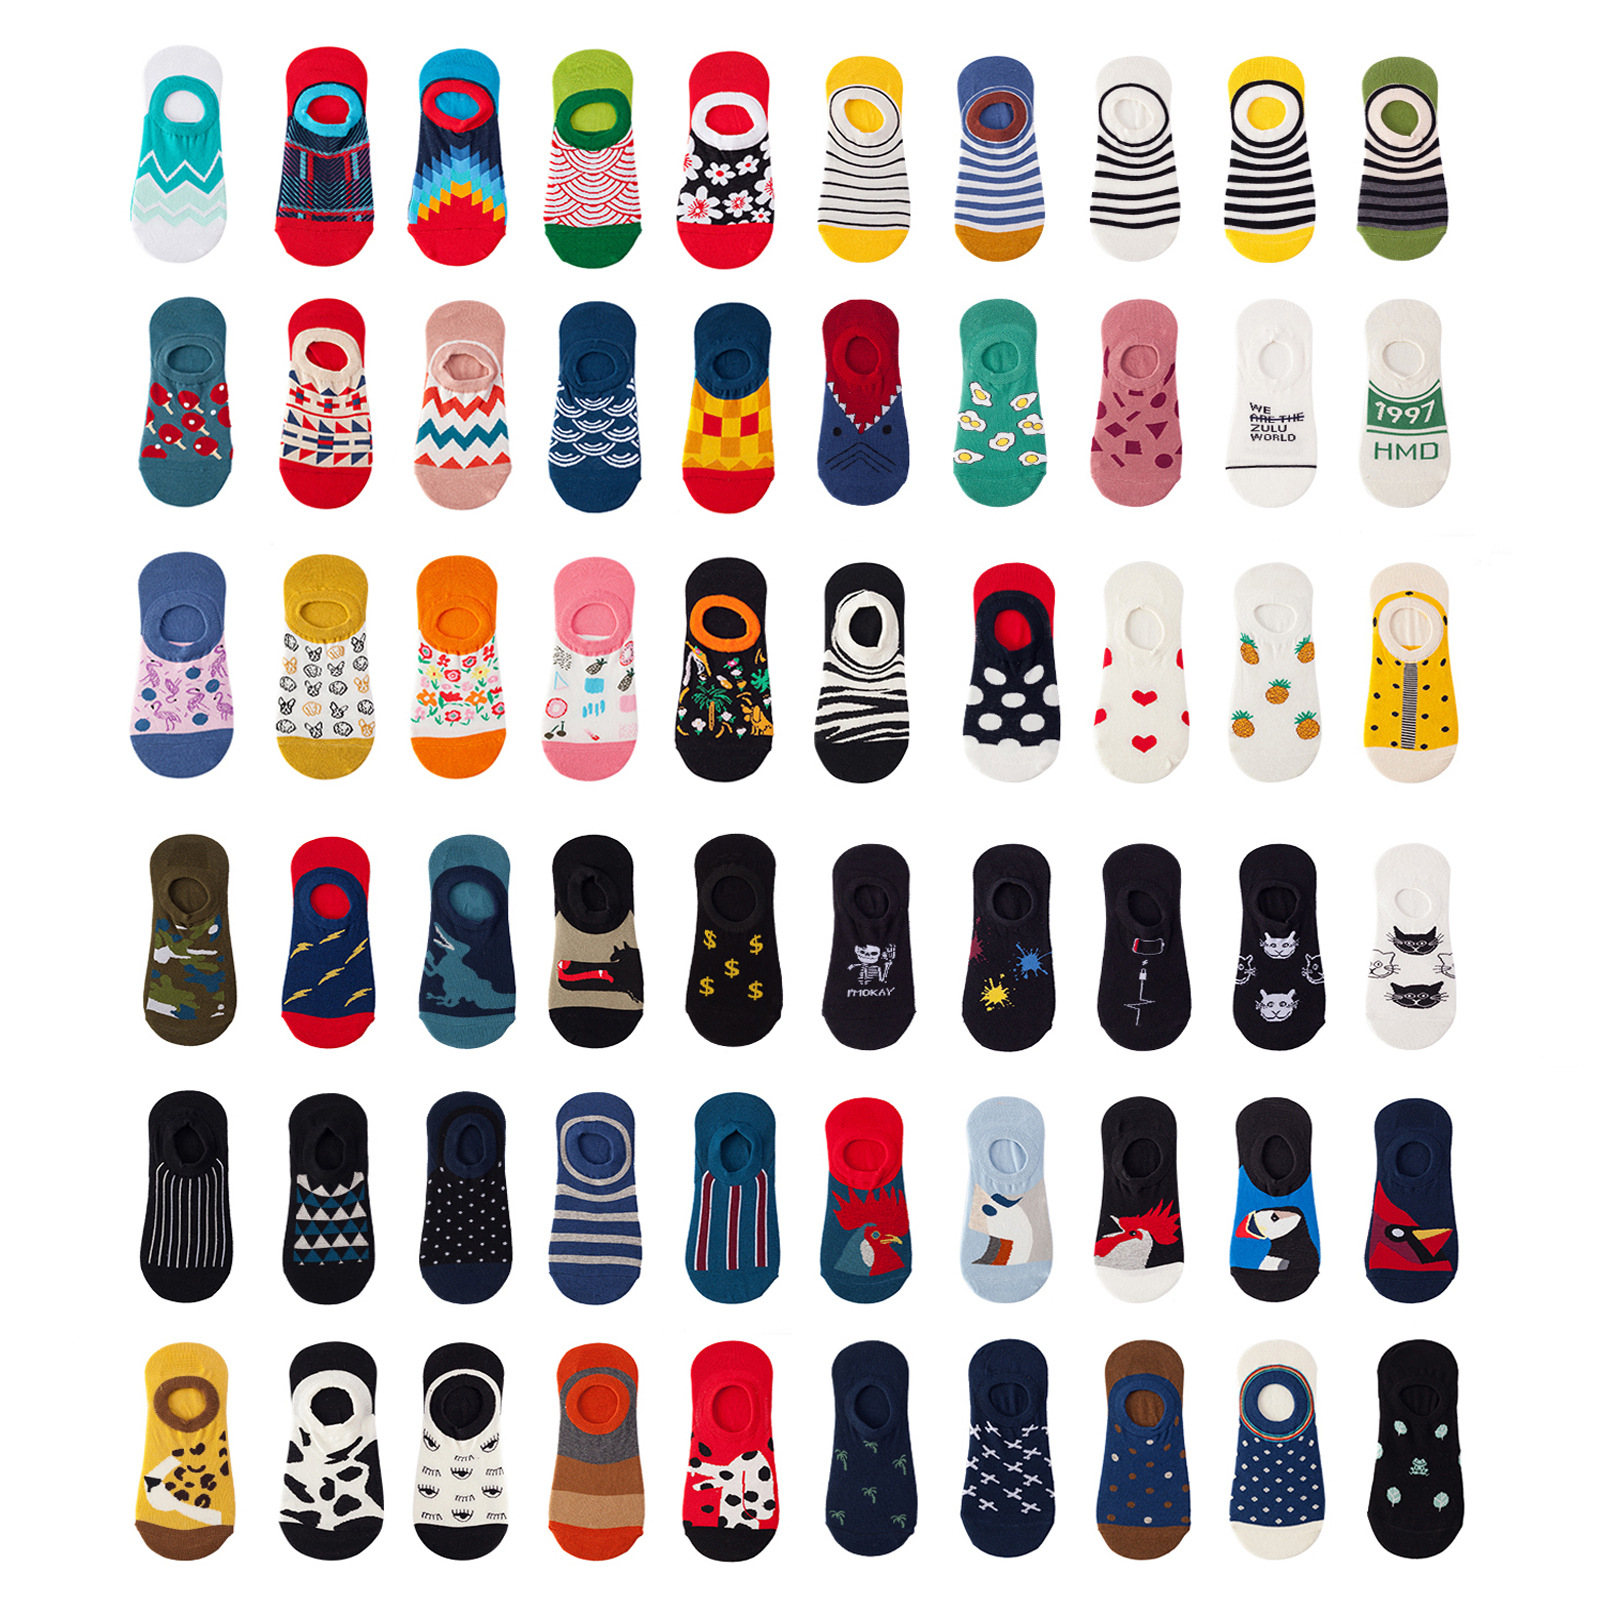 50 Style Summer Korea Socks Men Cartoon Wavy Striped Flower Dot Cat Socks Cute Animal Funny Ankle Socks Cotton Invisible Socks